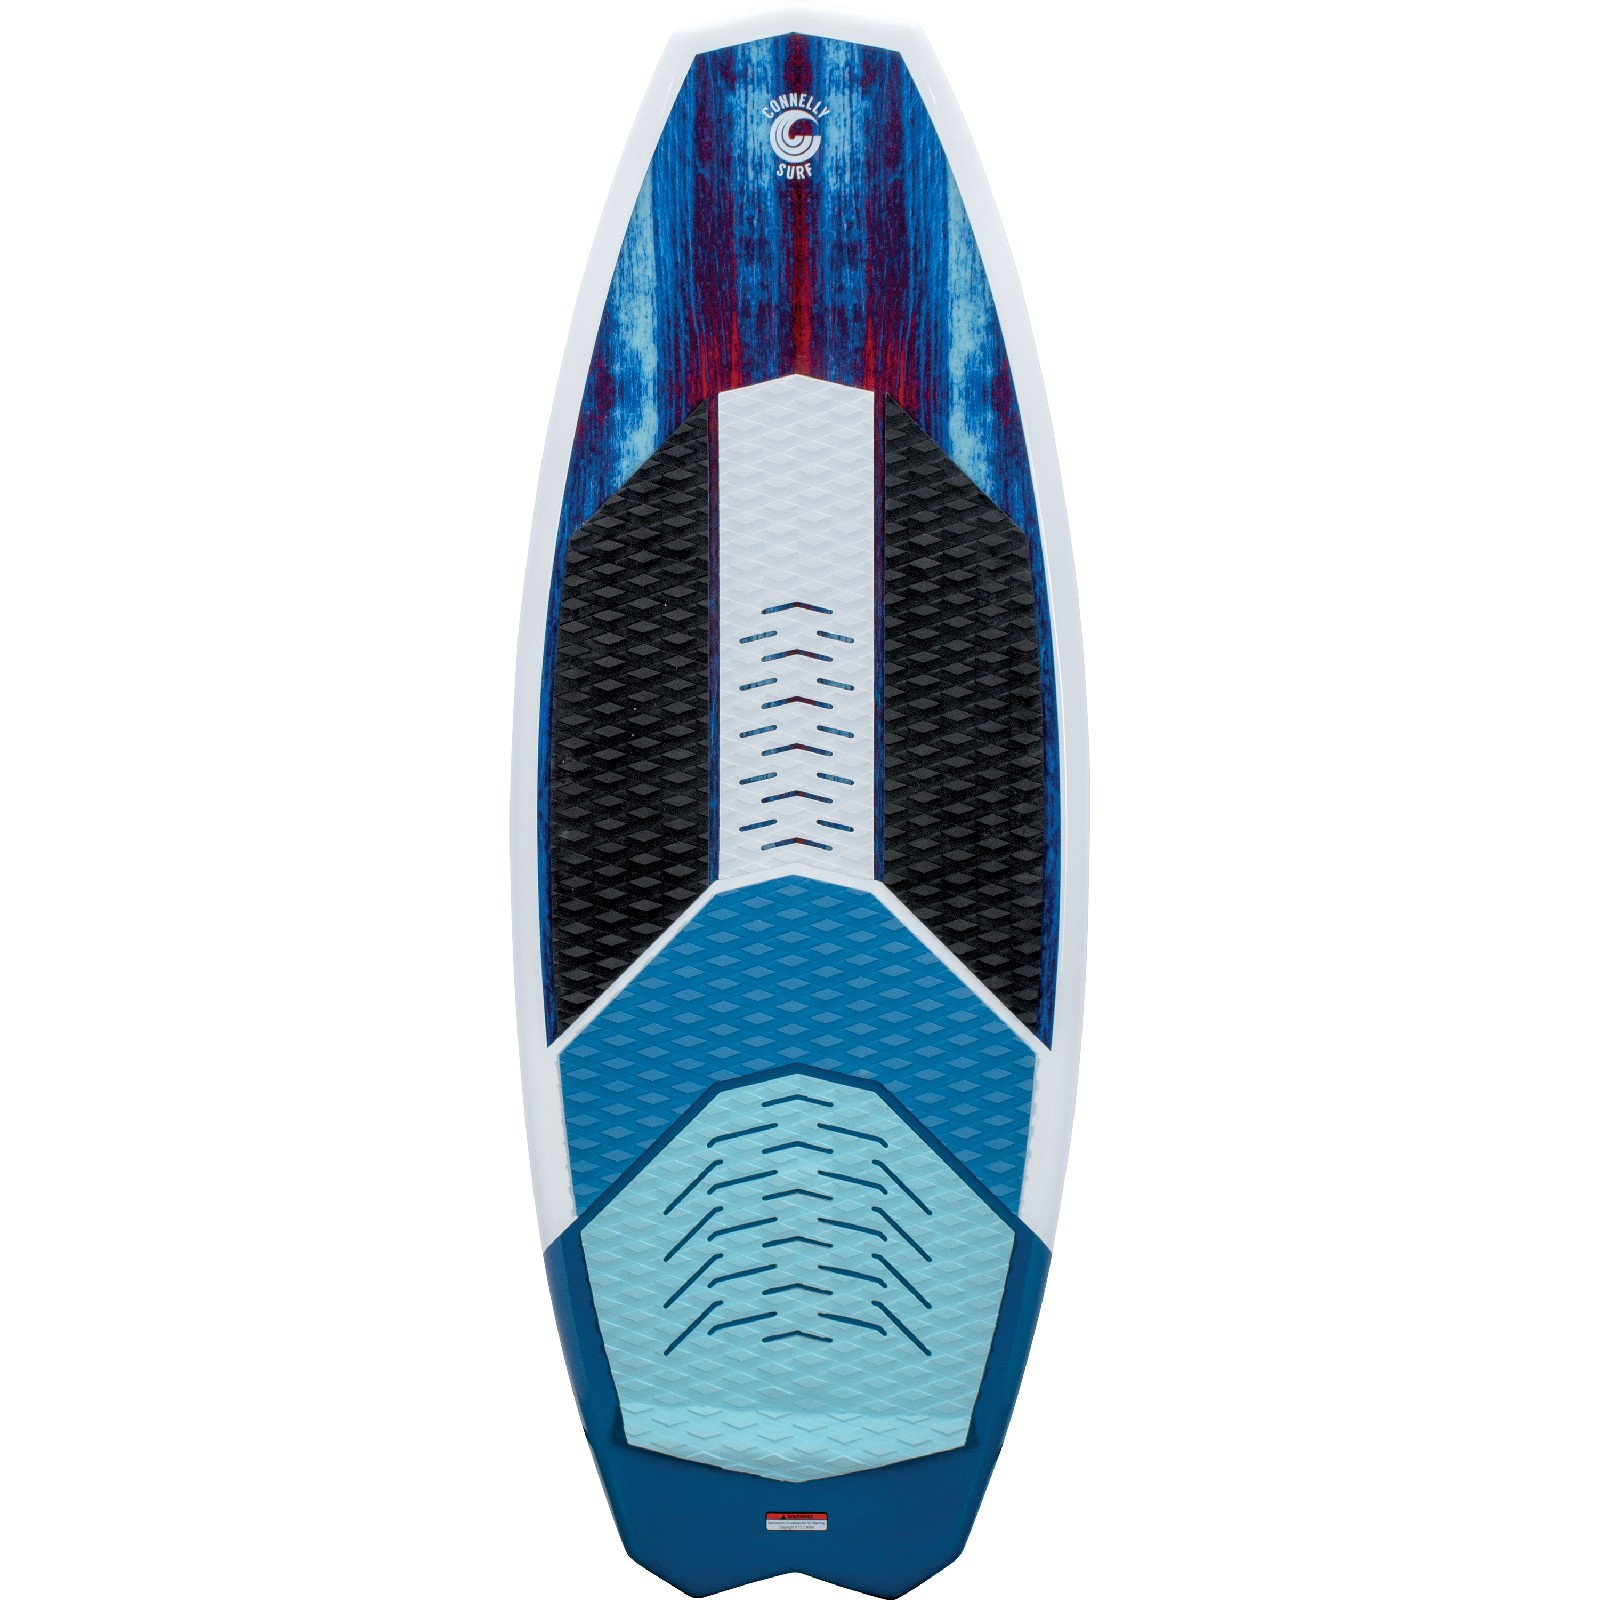 VOODOO 4.10 WAKESURFER CONNELLY 2019